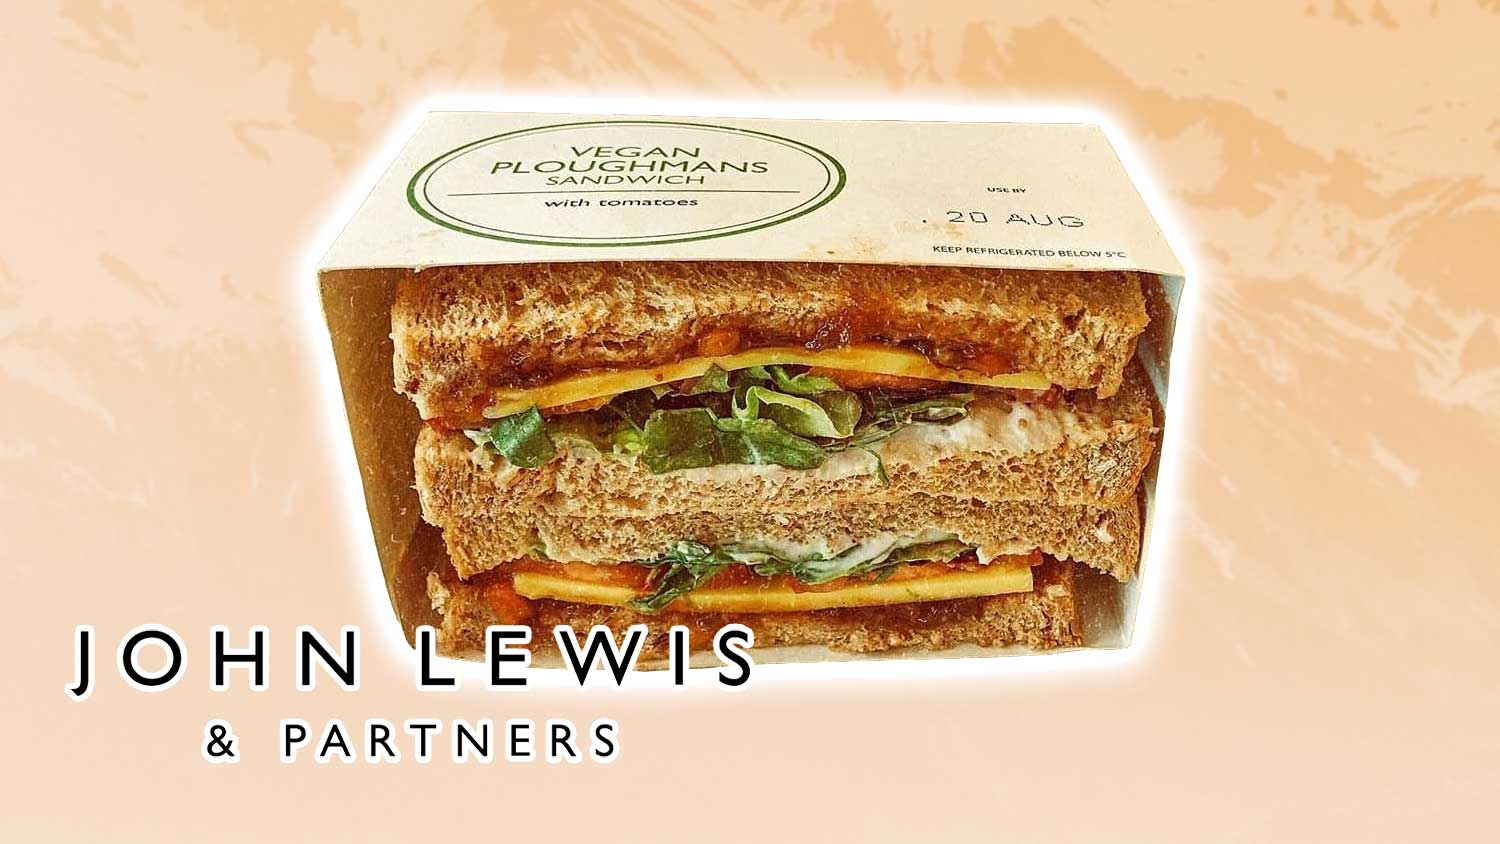 Vegan Cheese Ploughman's Sandwiches Are Now at John Lewis